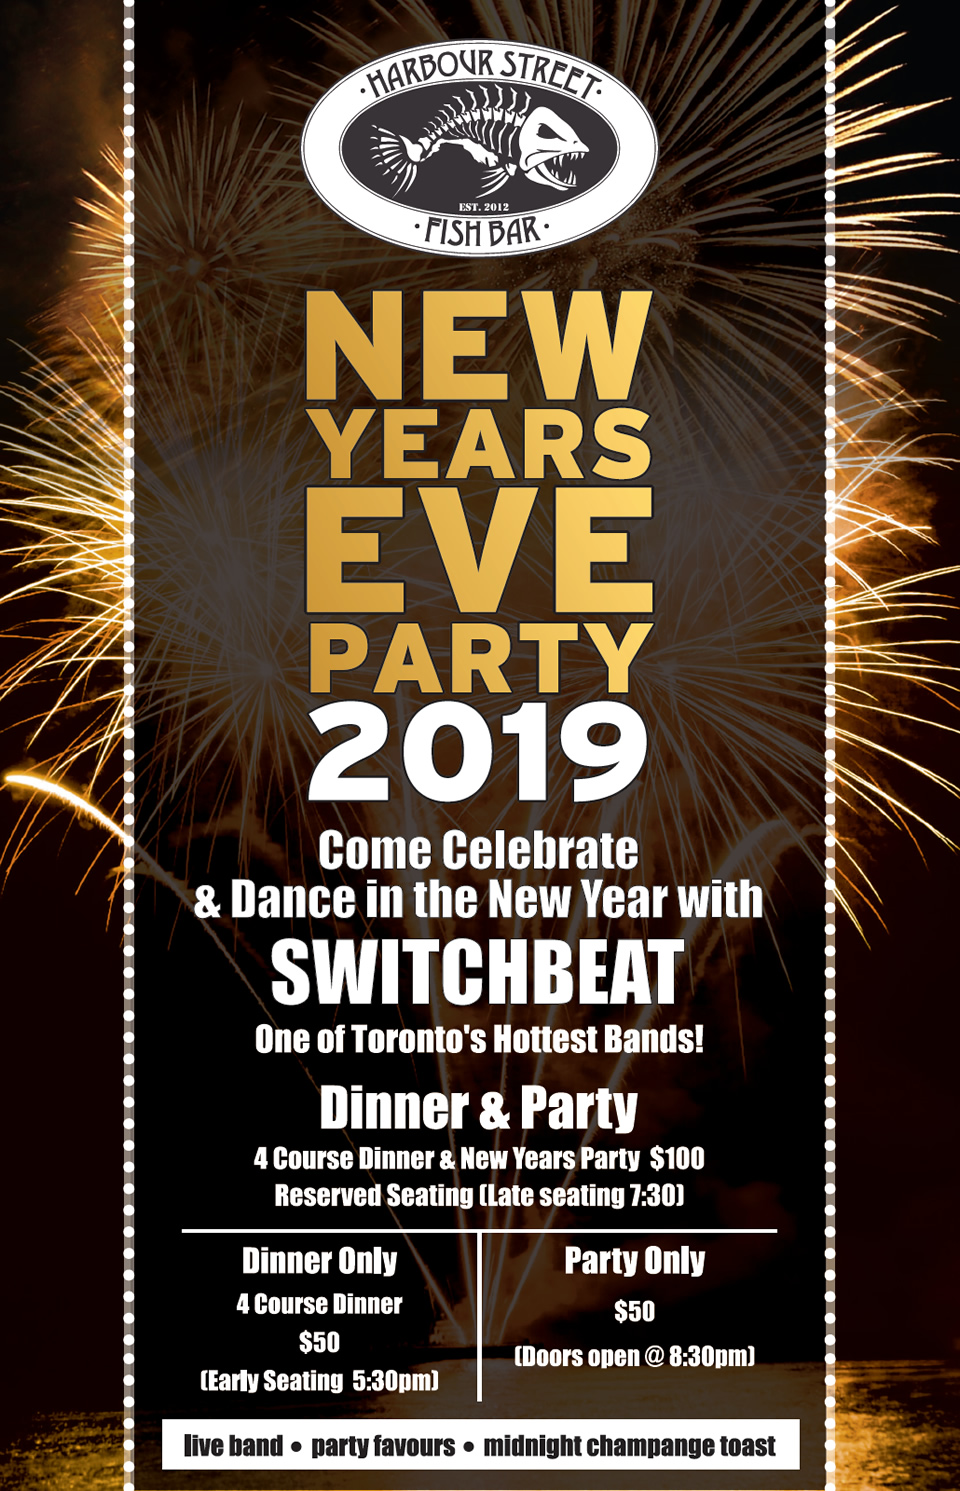 NEW YEAR'S EVE PARTY – Harbour Street Fish Bar